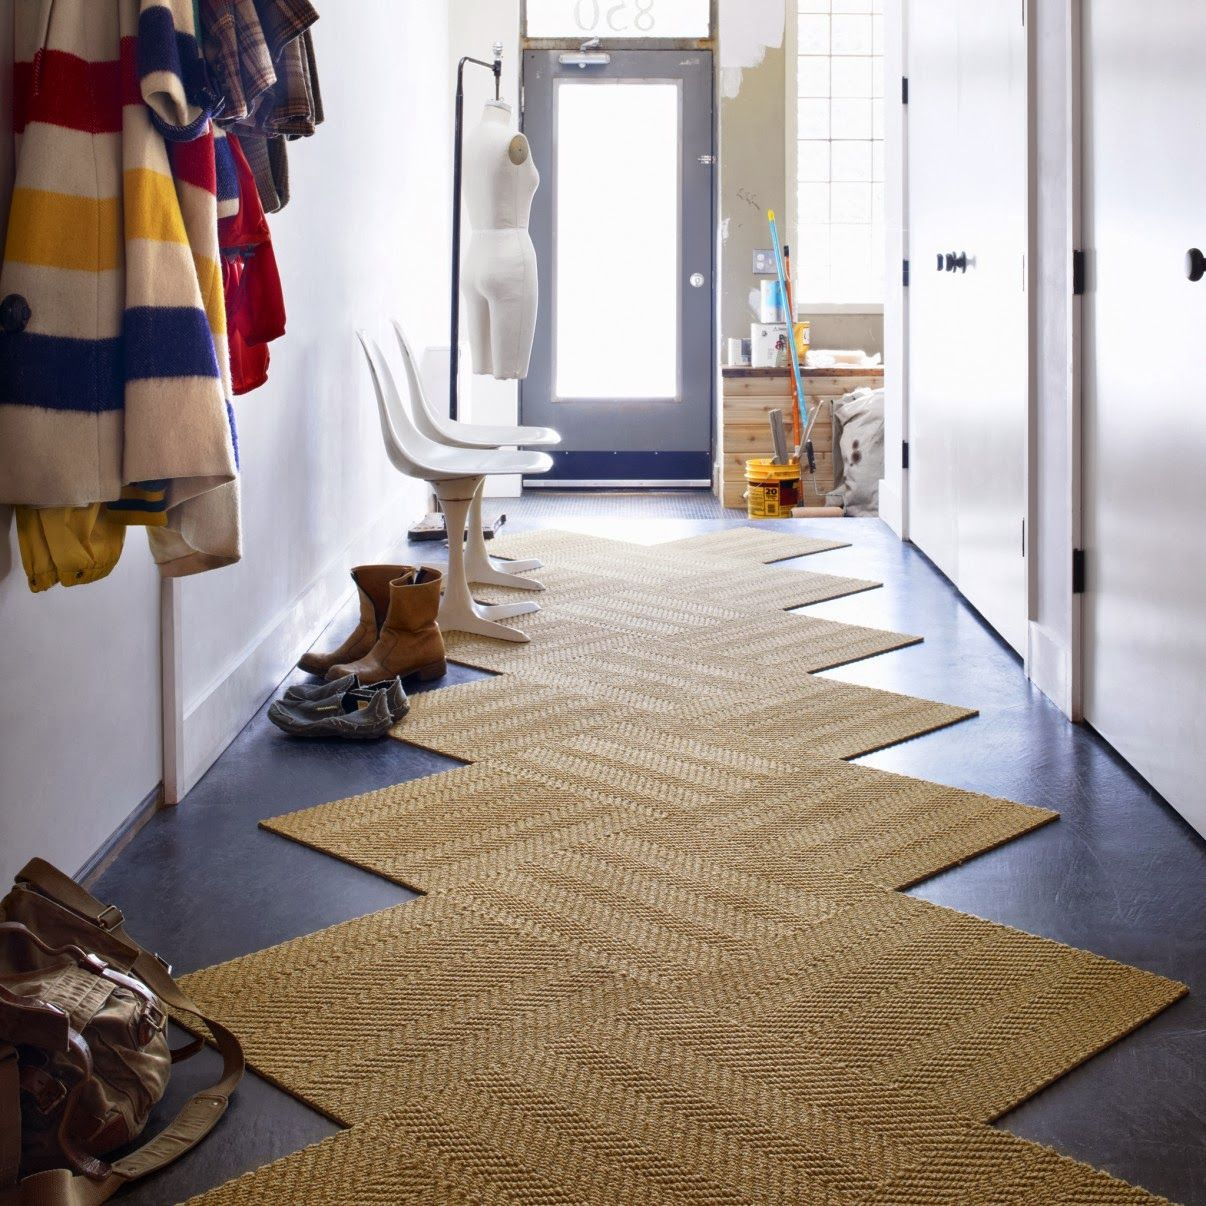 Decorology Who Knew Carpet Could Be Fun Custom Size Rugs Hallway Decorating Rug Runner Hallway